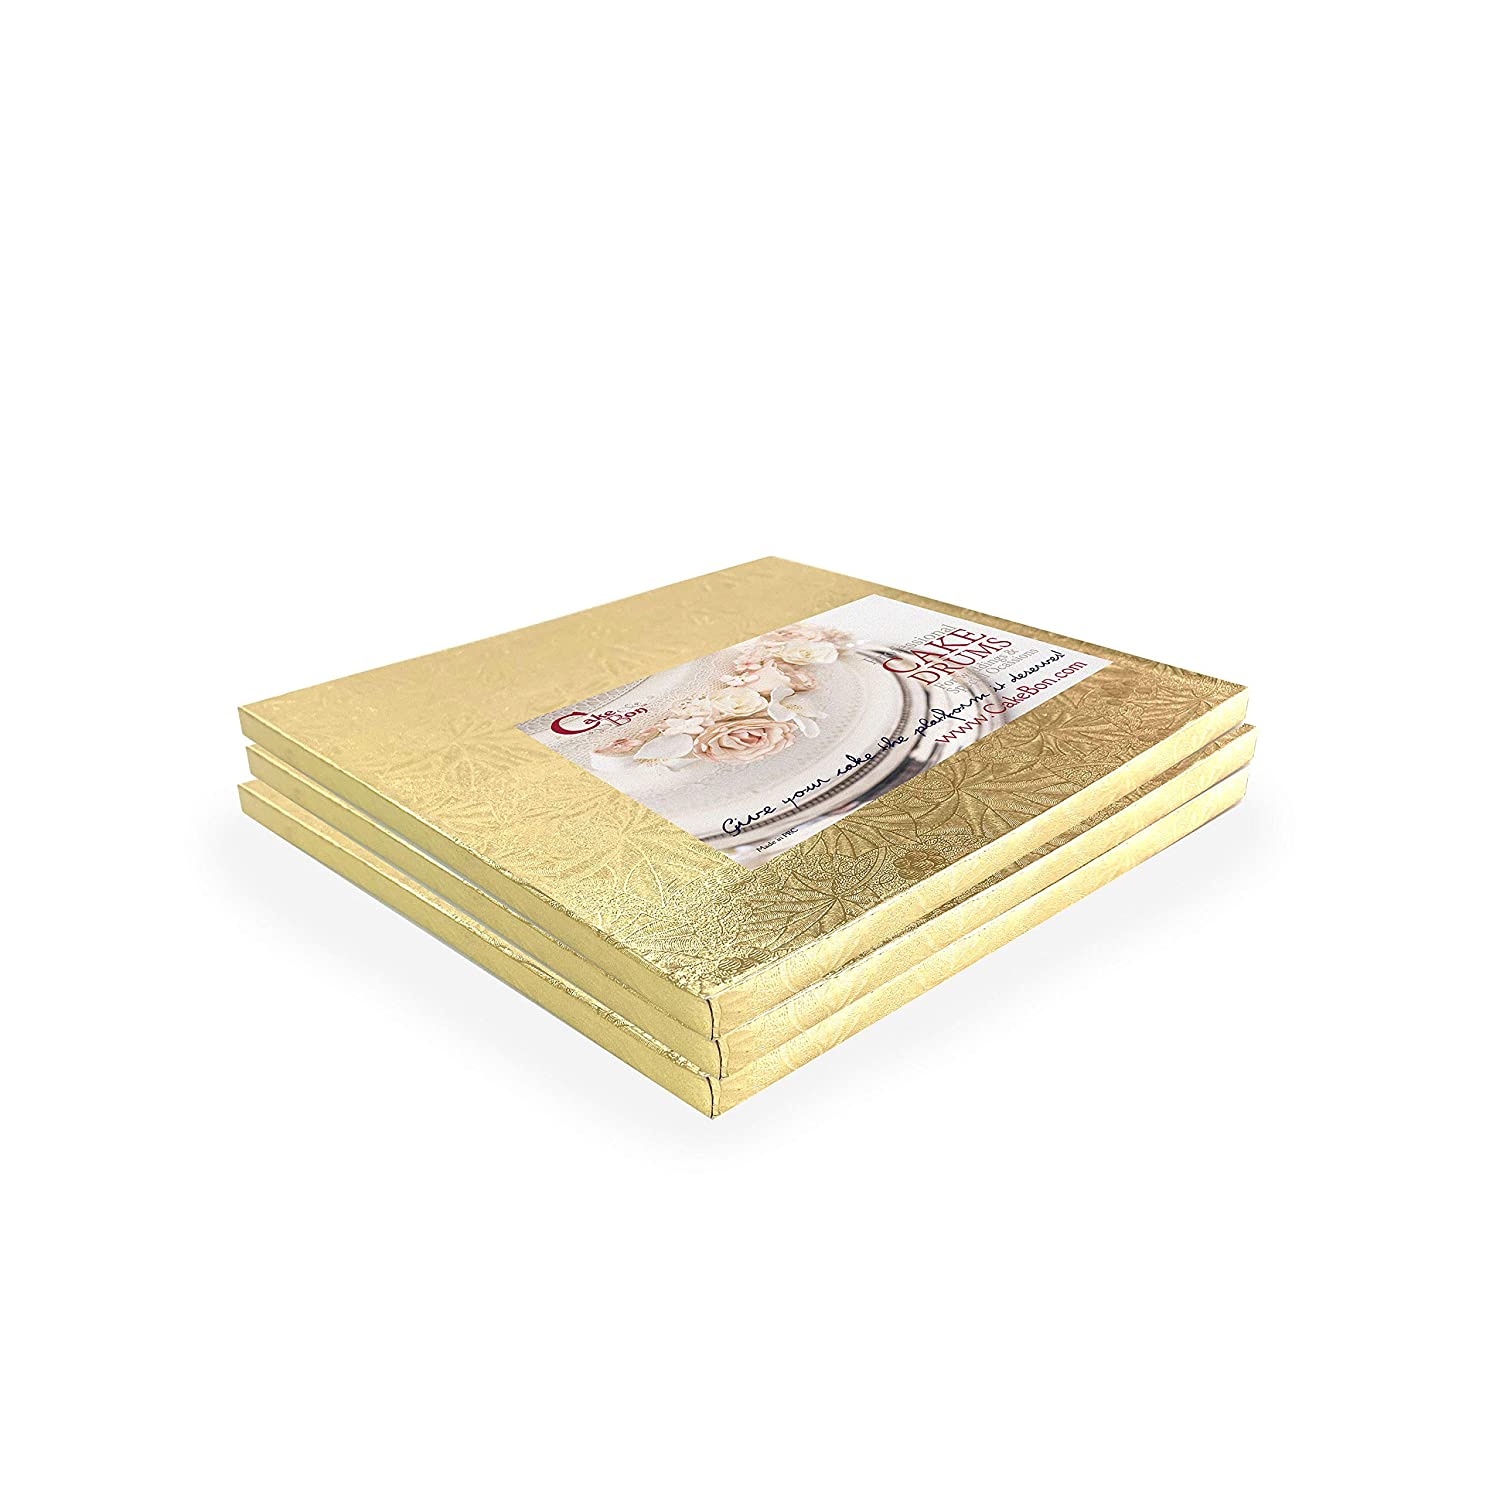 Cake Arlington Mall Drums Many popular brands Square 8 Inches - Gold 2 Th 1 Sturdy Inch 3-Pack